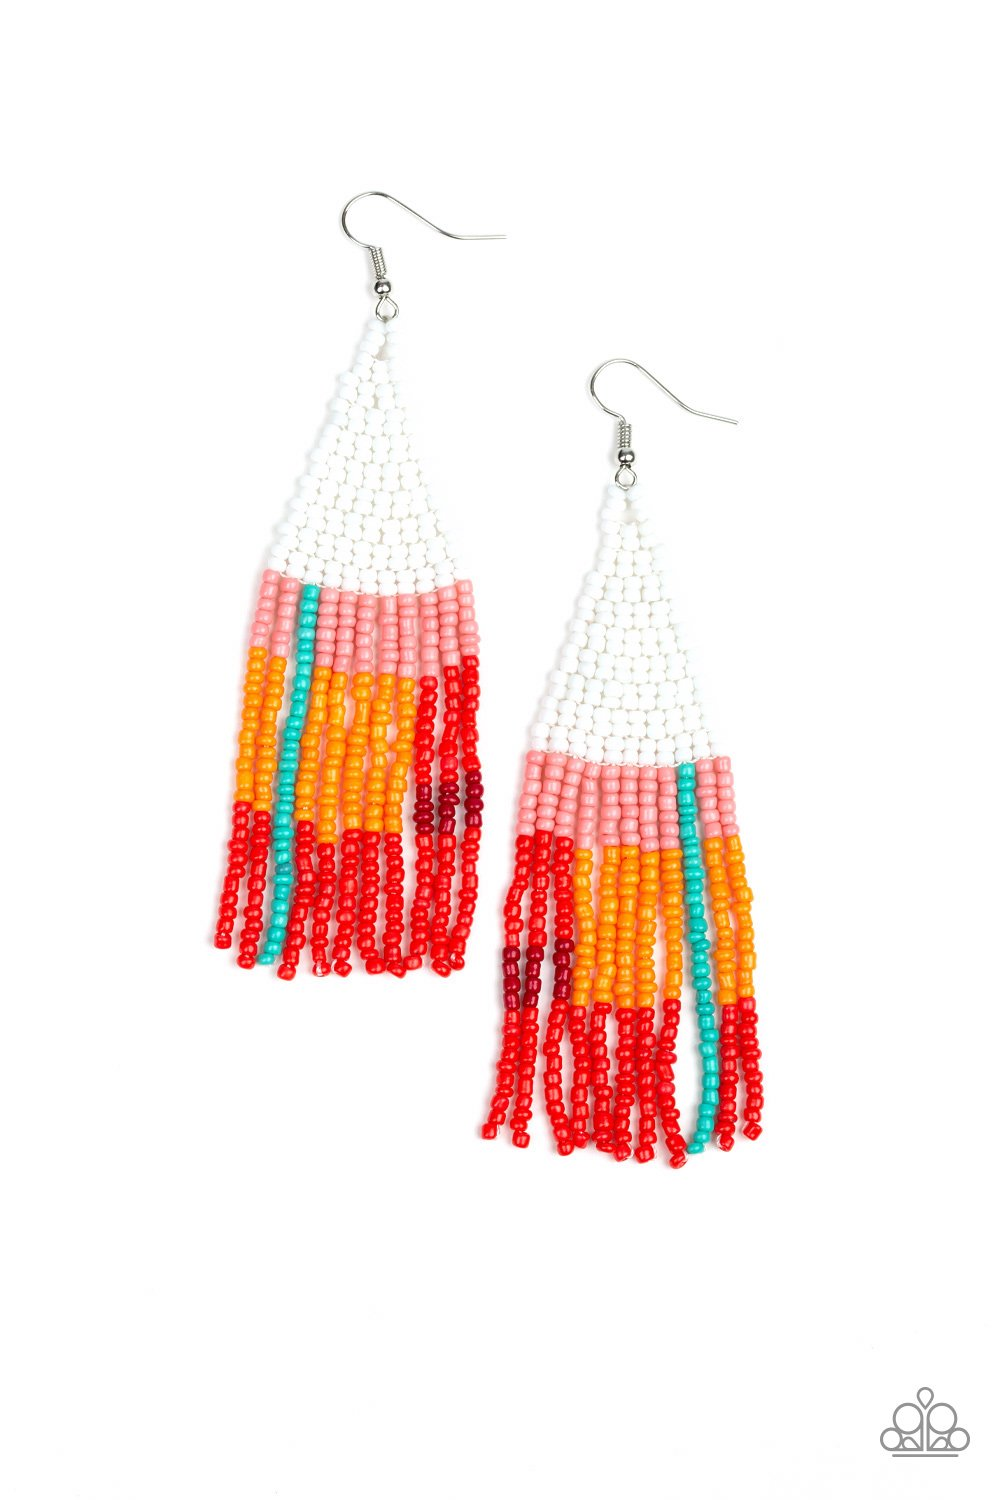 Beaded Boho - White Earring- Paparazzi Accessories - Pretty Girl Jewels